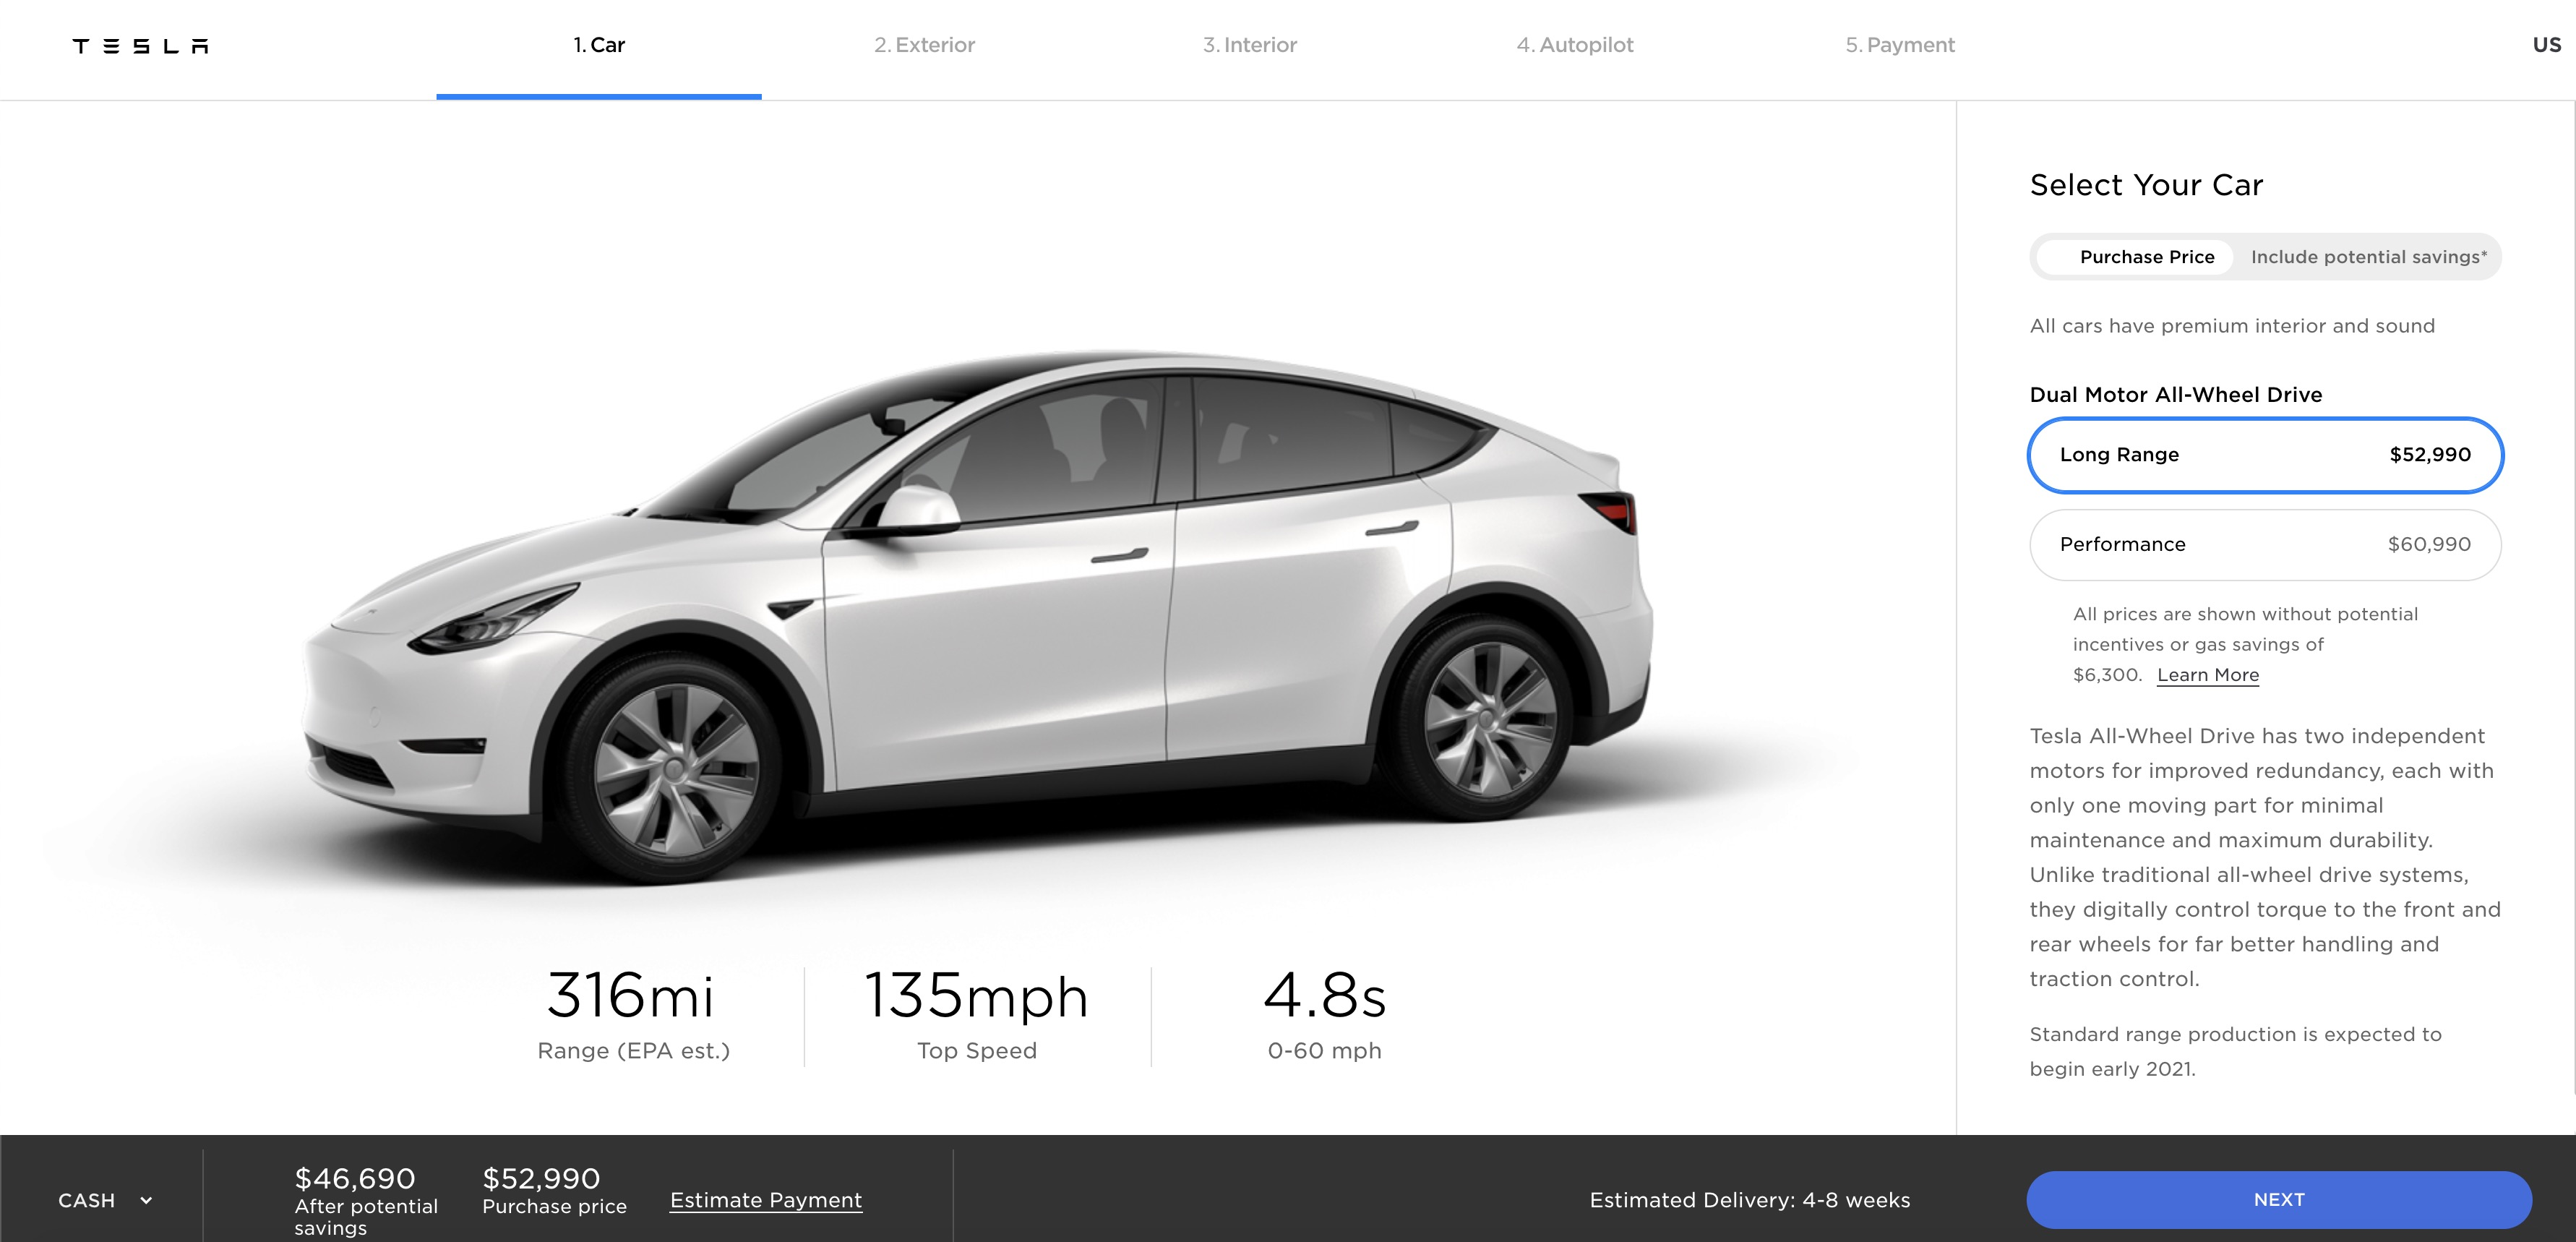 Tesla drastically accelerates Model Y delivery timeline – What is happening?